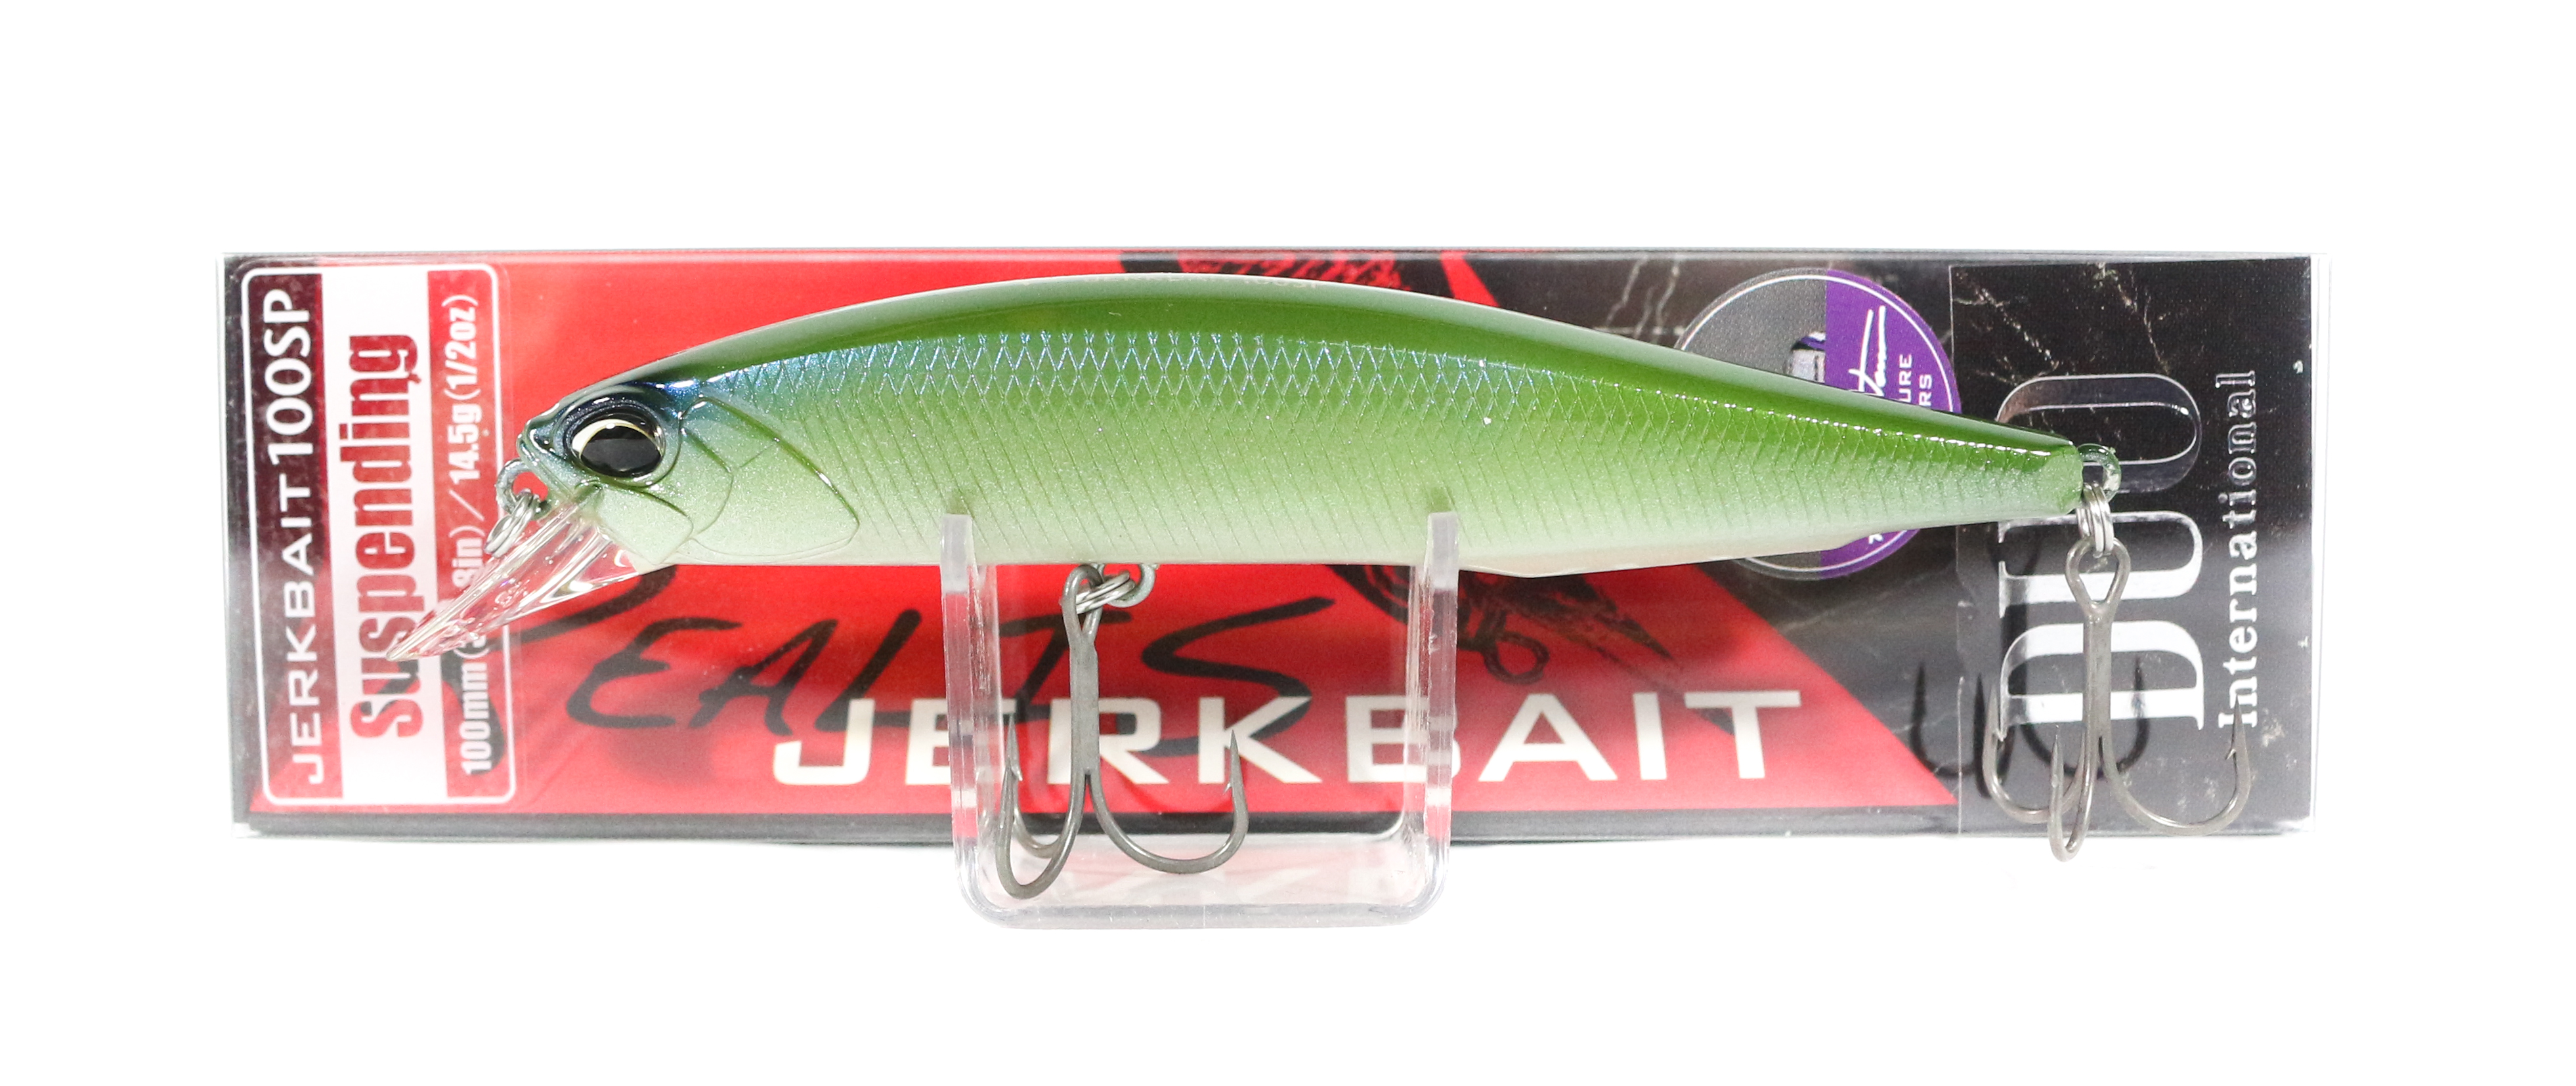 Duo Realis Jerkbait 100SP Suspend Lure CCC3164 (4492)